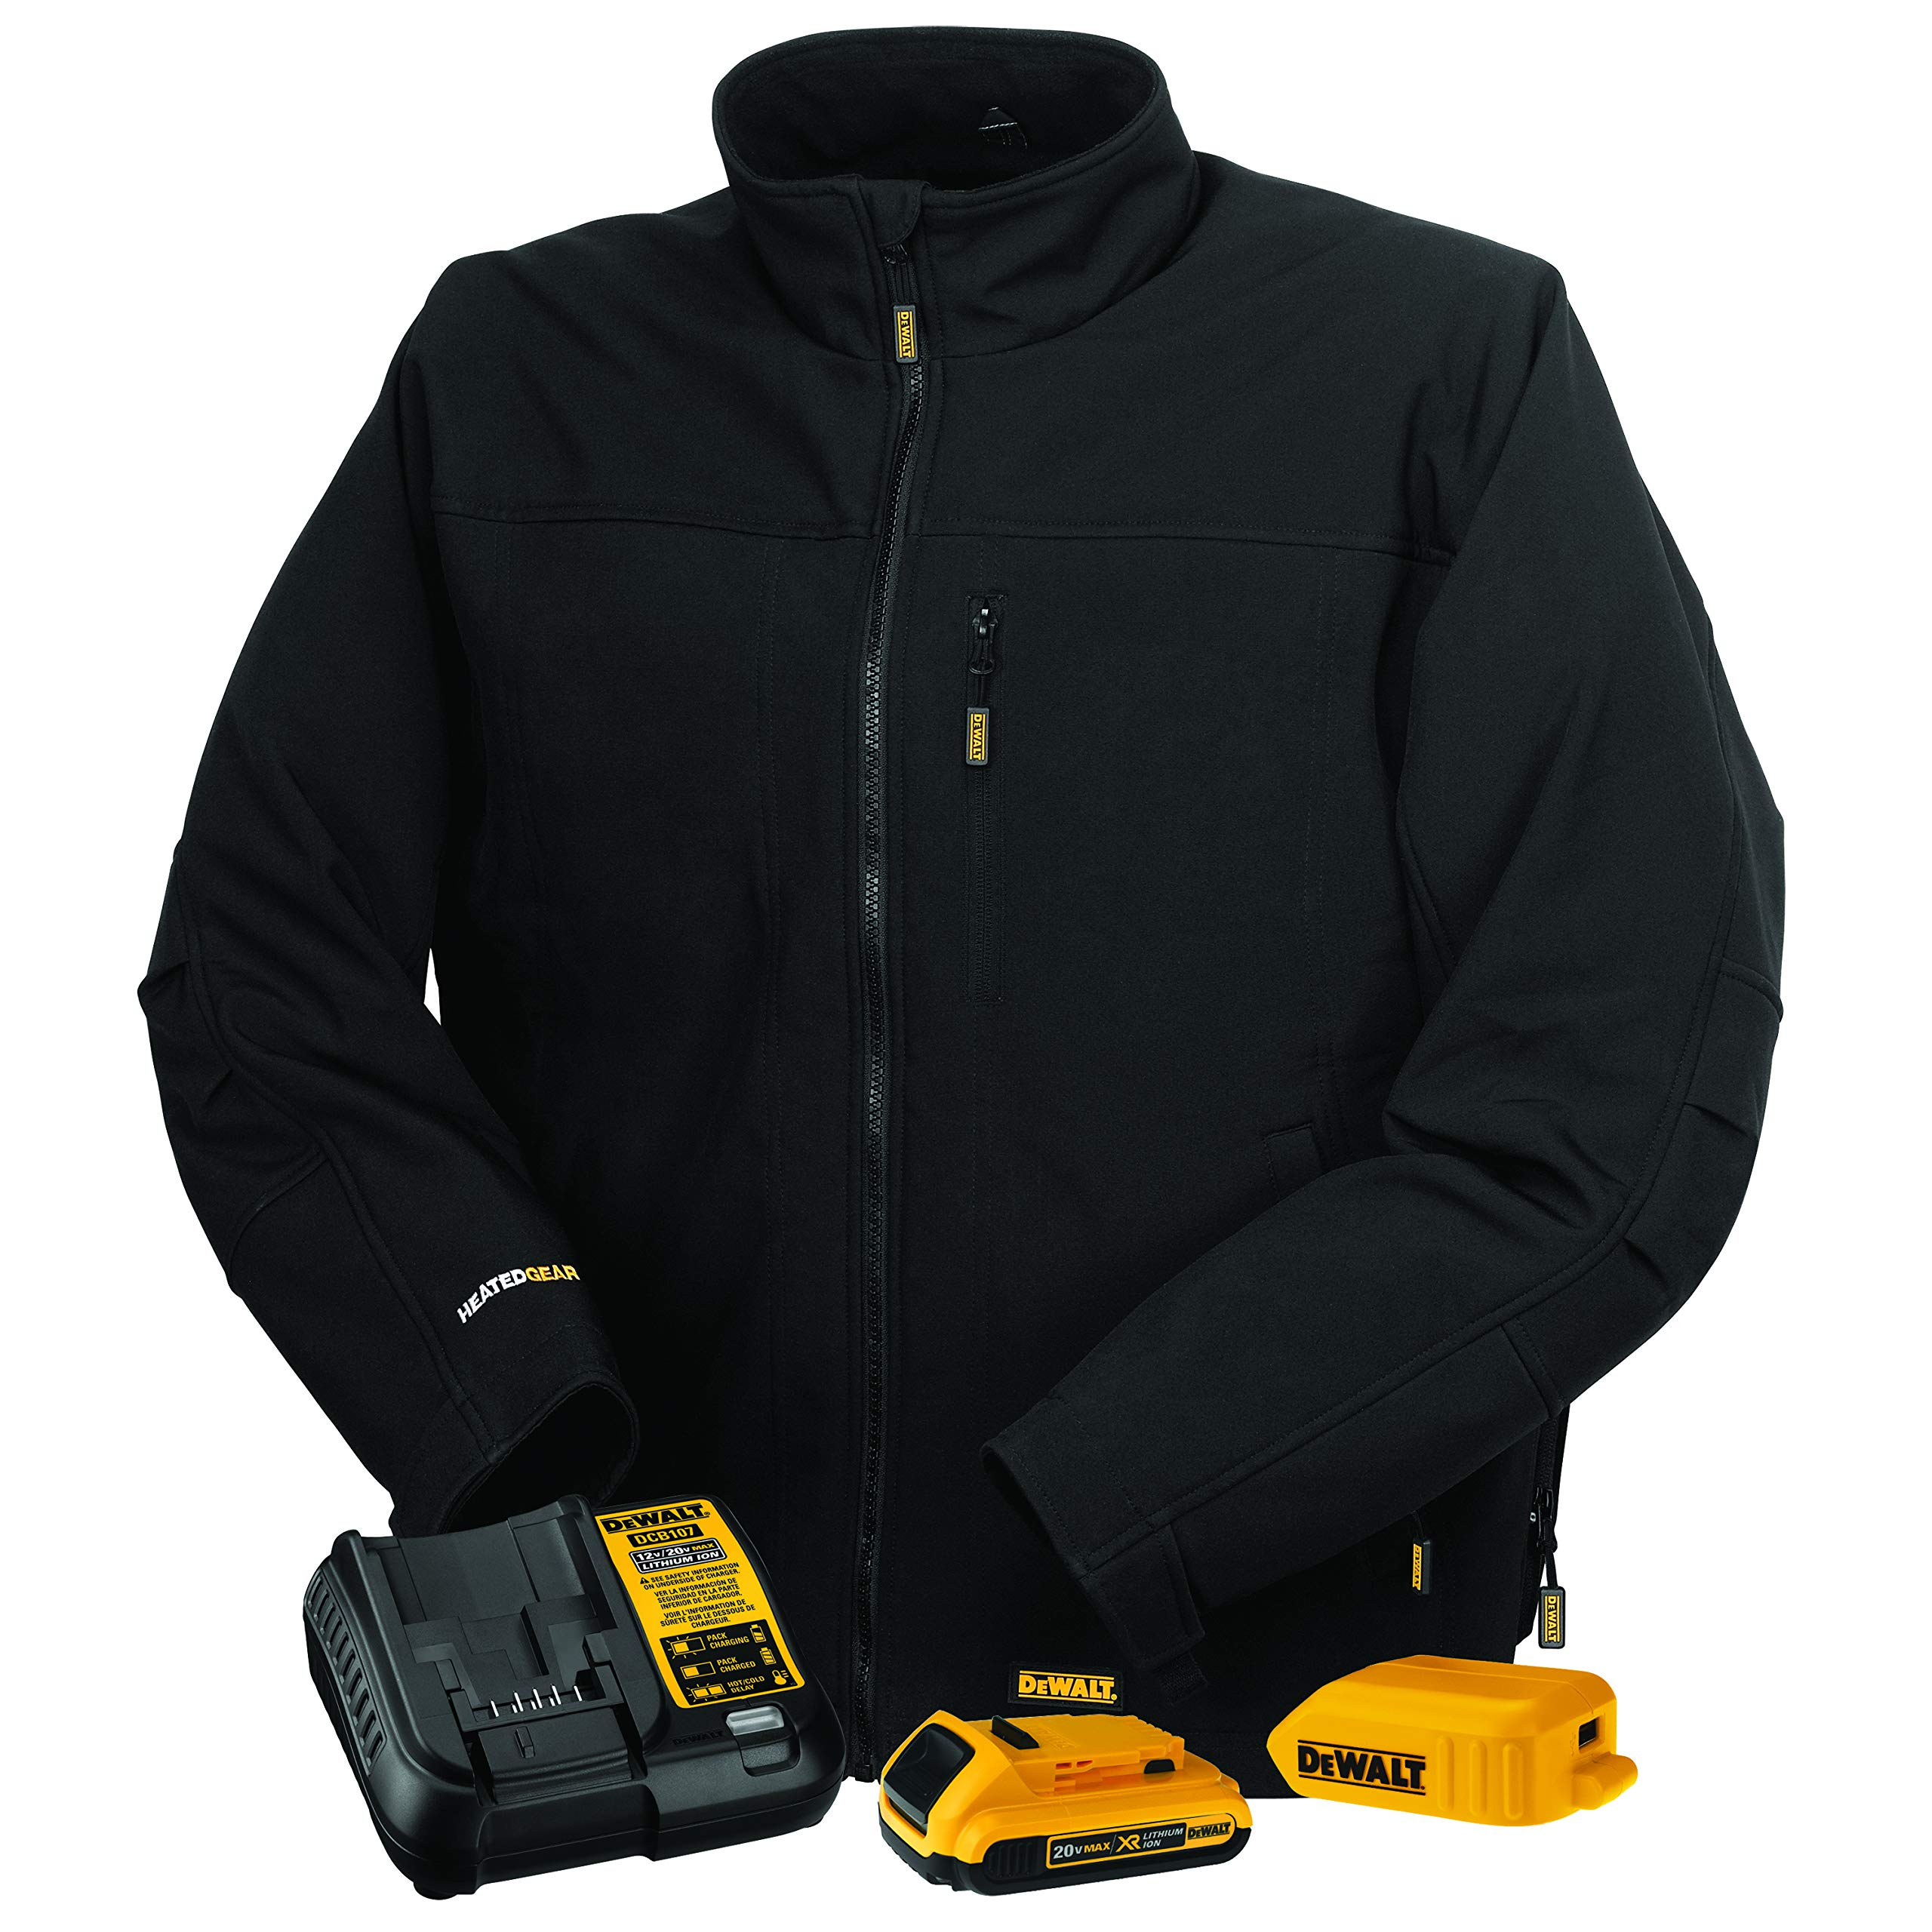 DEWALT DCHJ060A Heated Soft Shell Jacket Kit with 2.0Ah Battery & Charger by DEWALT